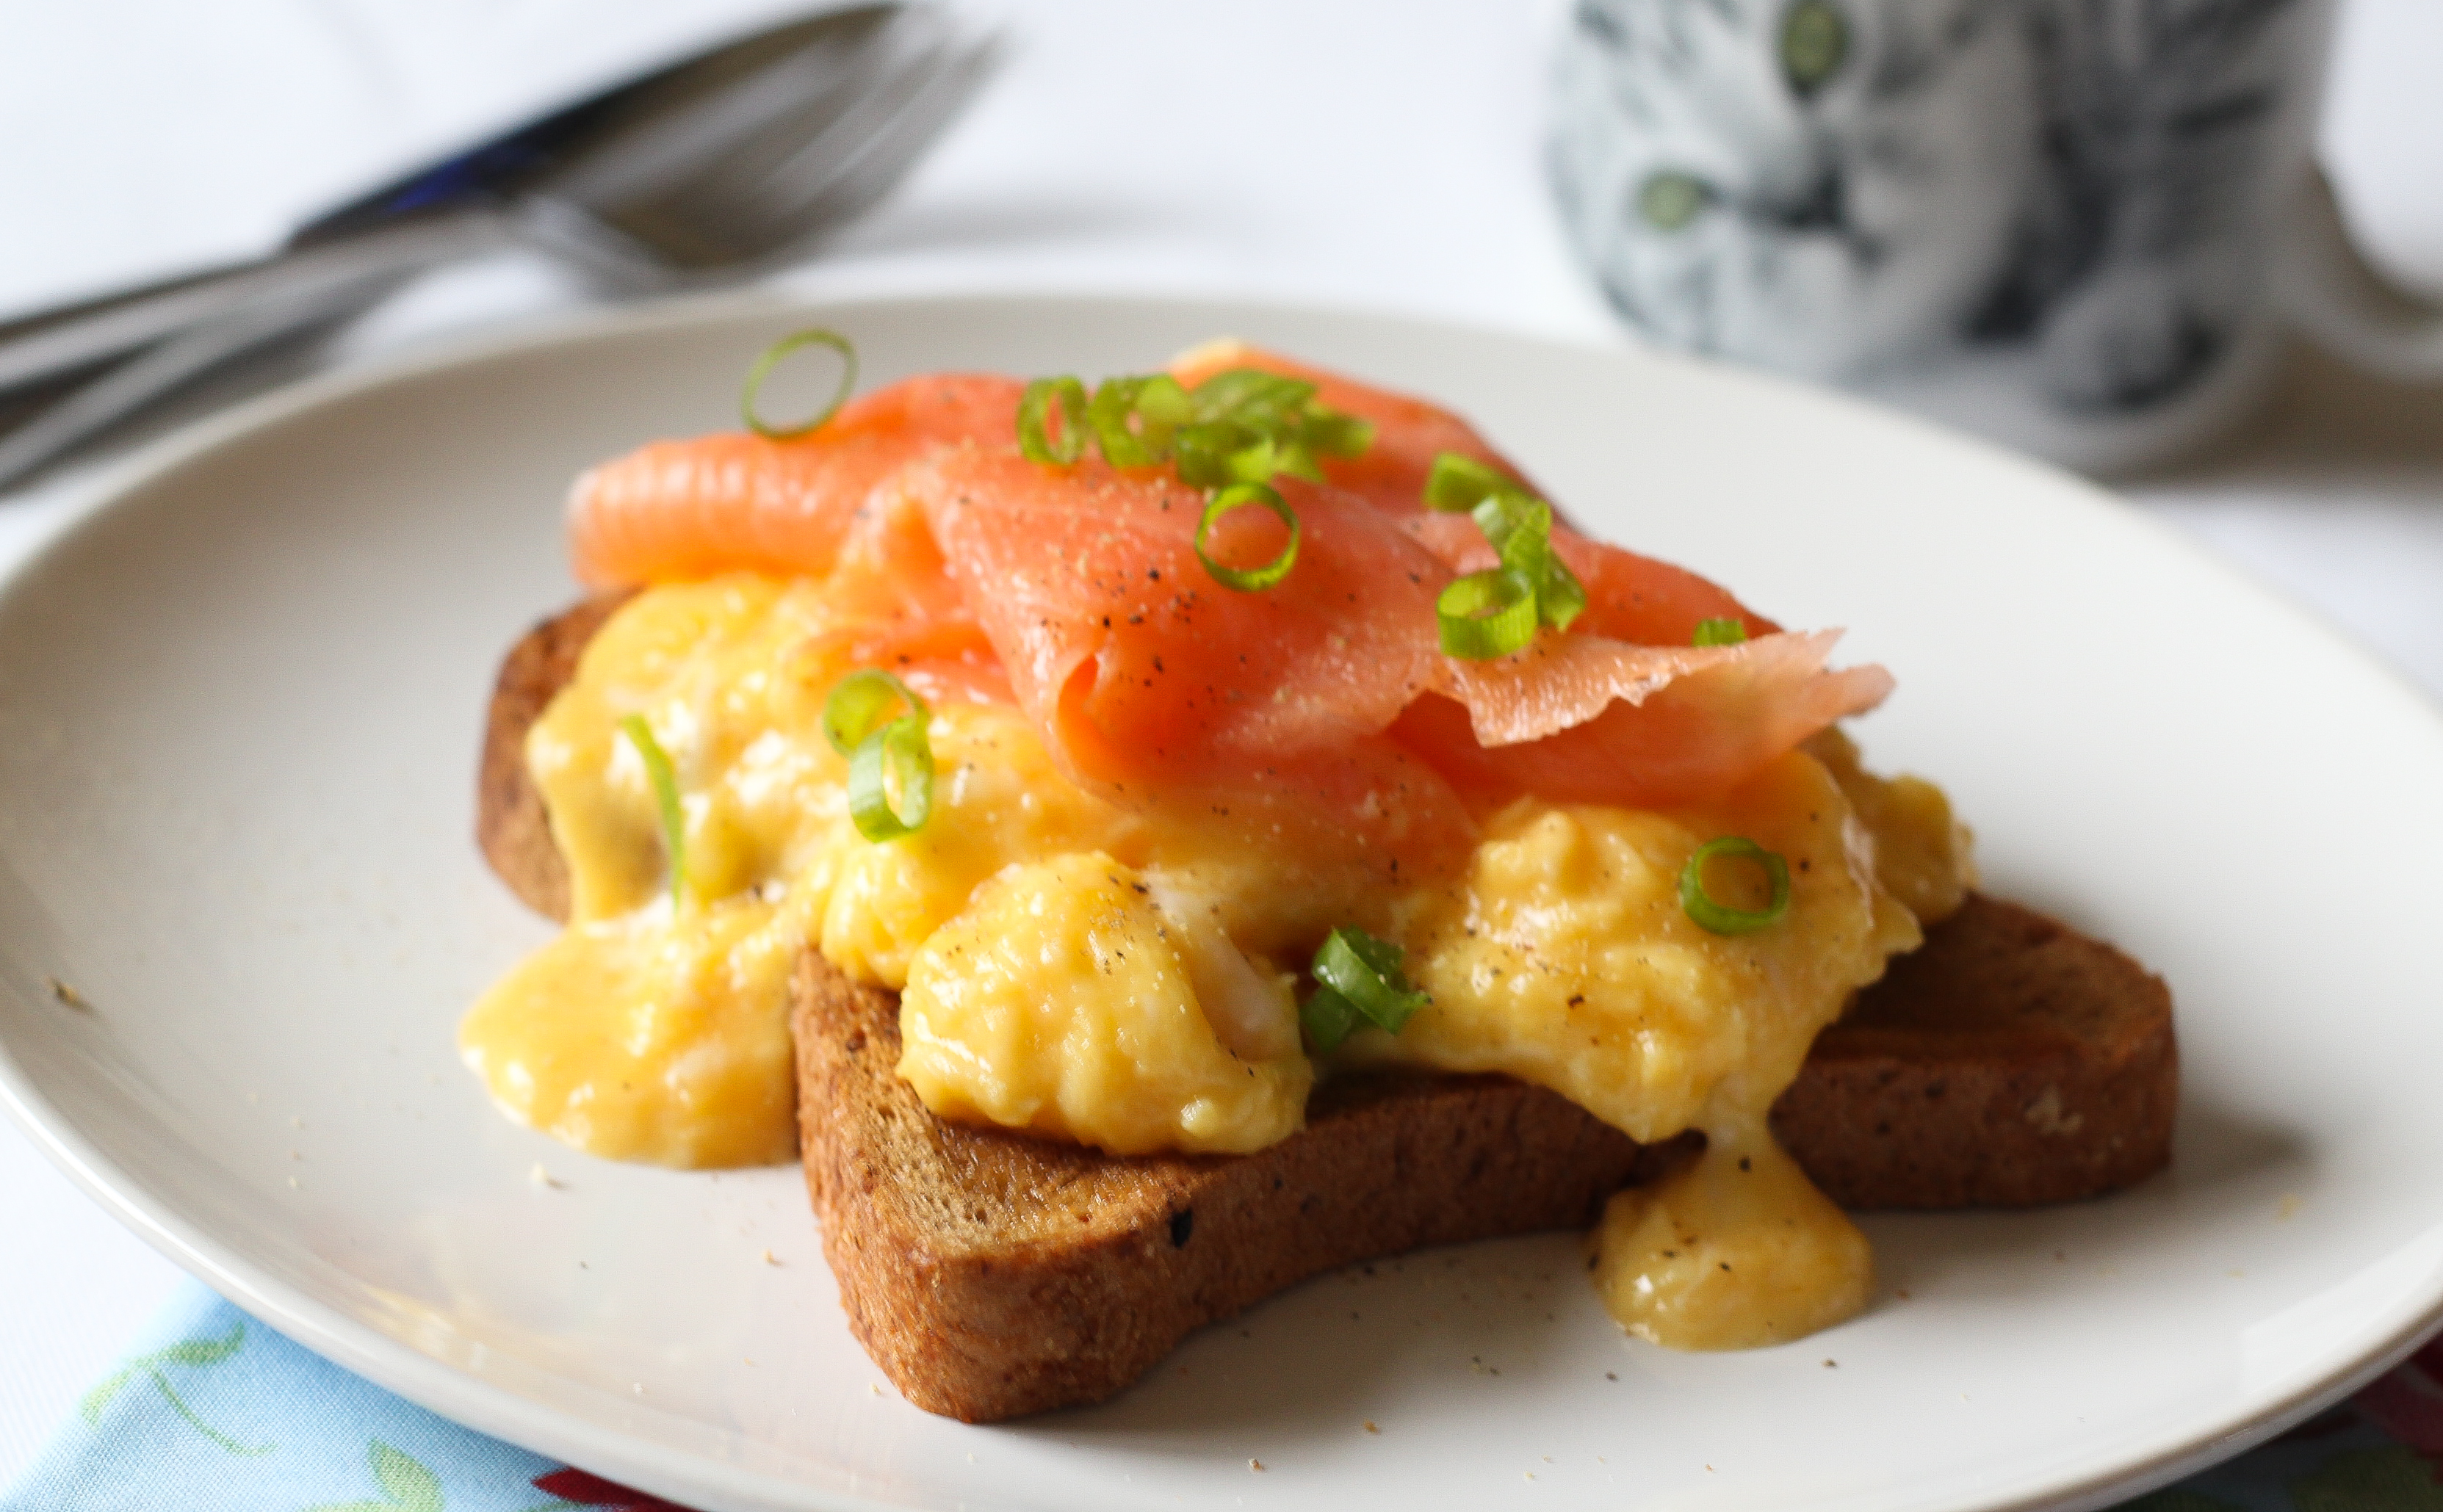 Smoked Salmon and Scrambled eggs on Gluten Free Toast ...